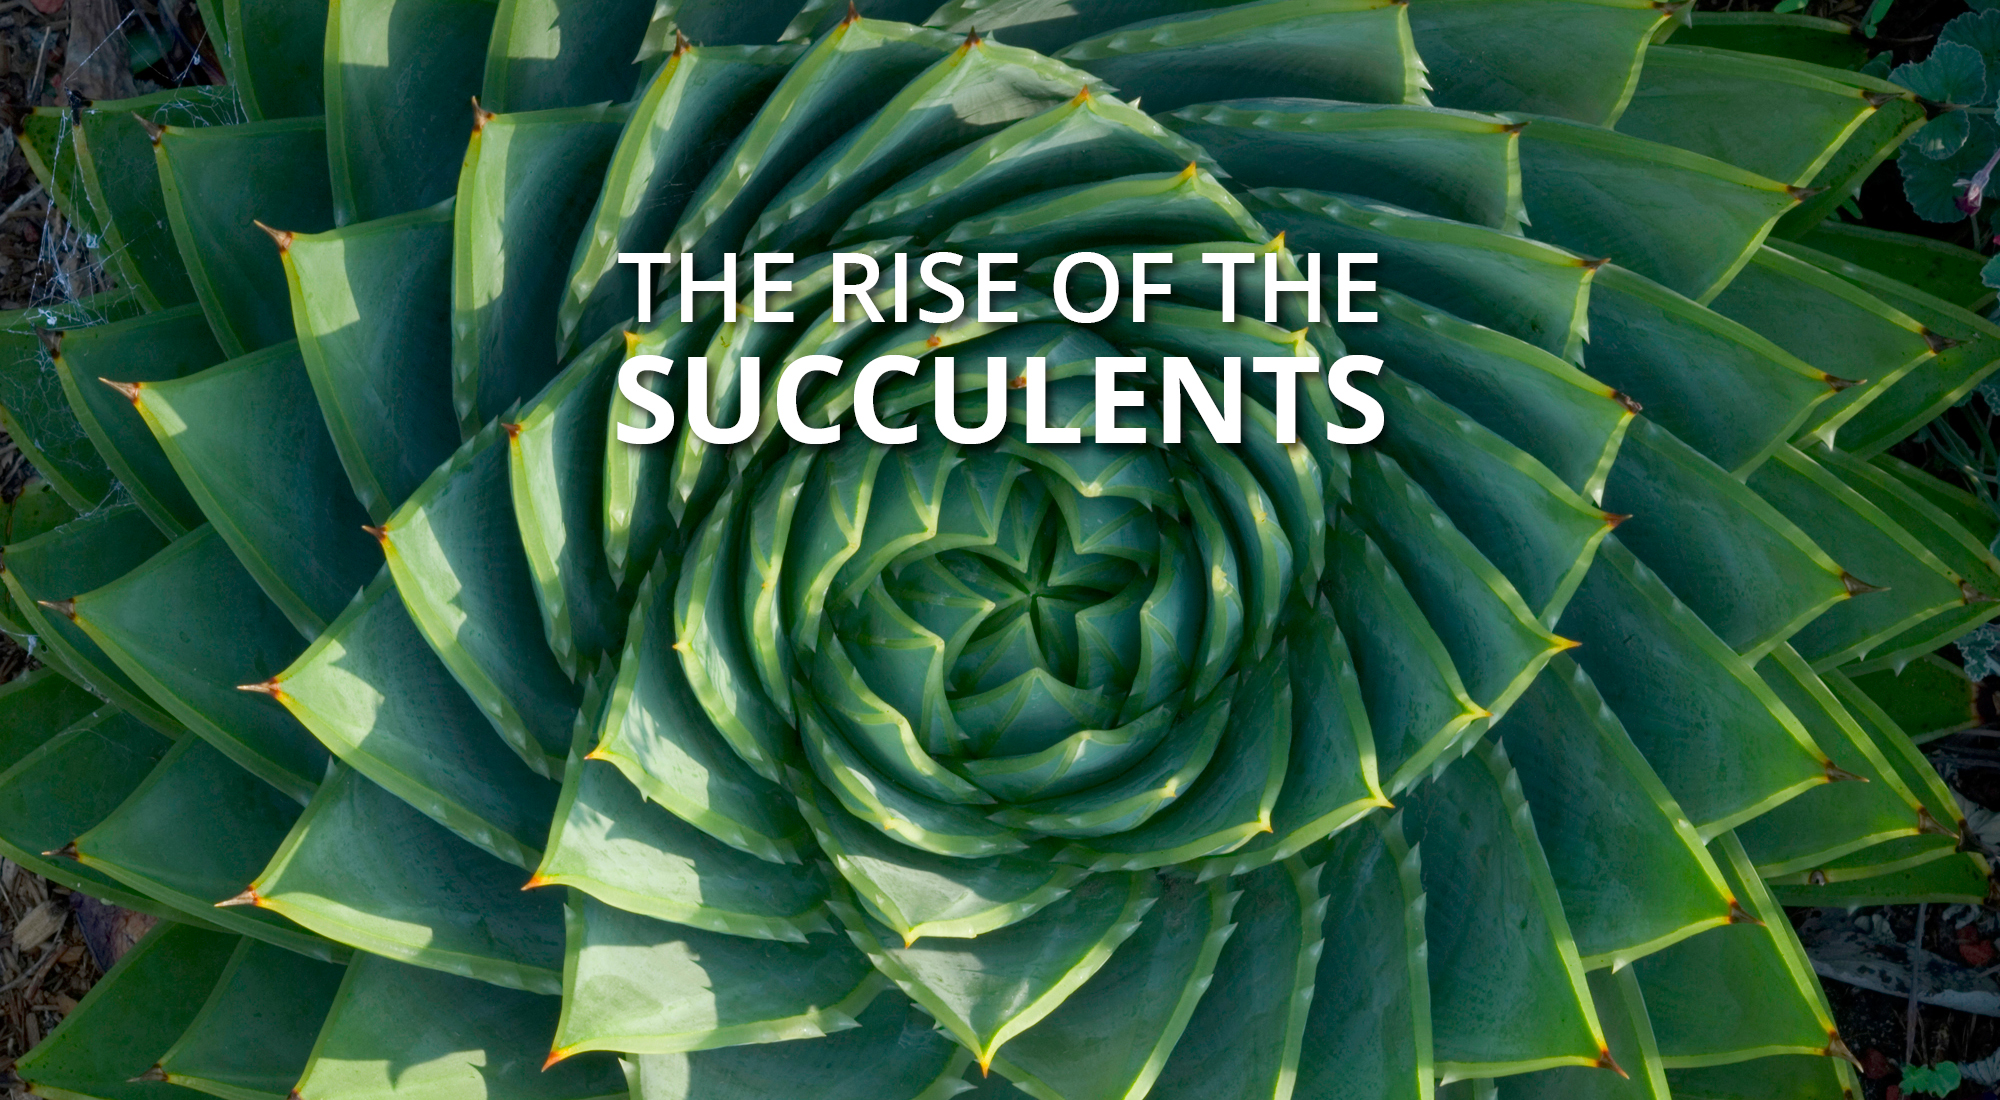 The Rise of The Succulents